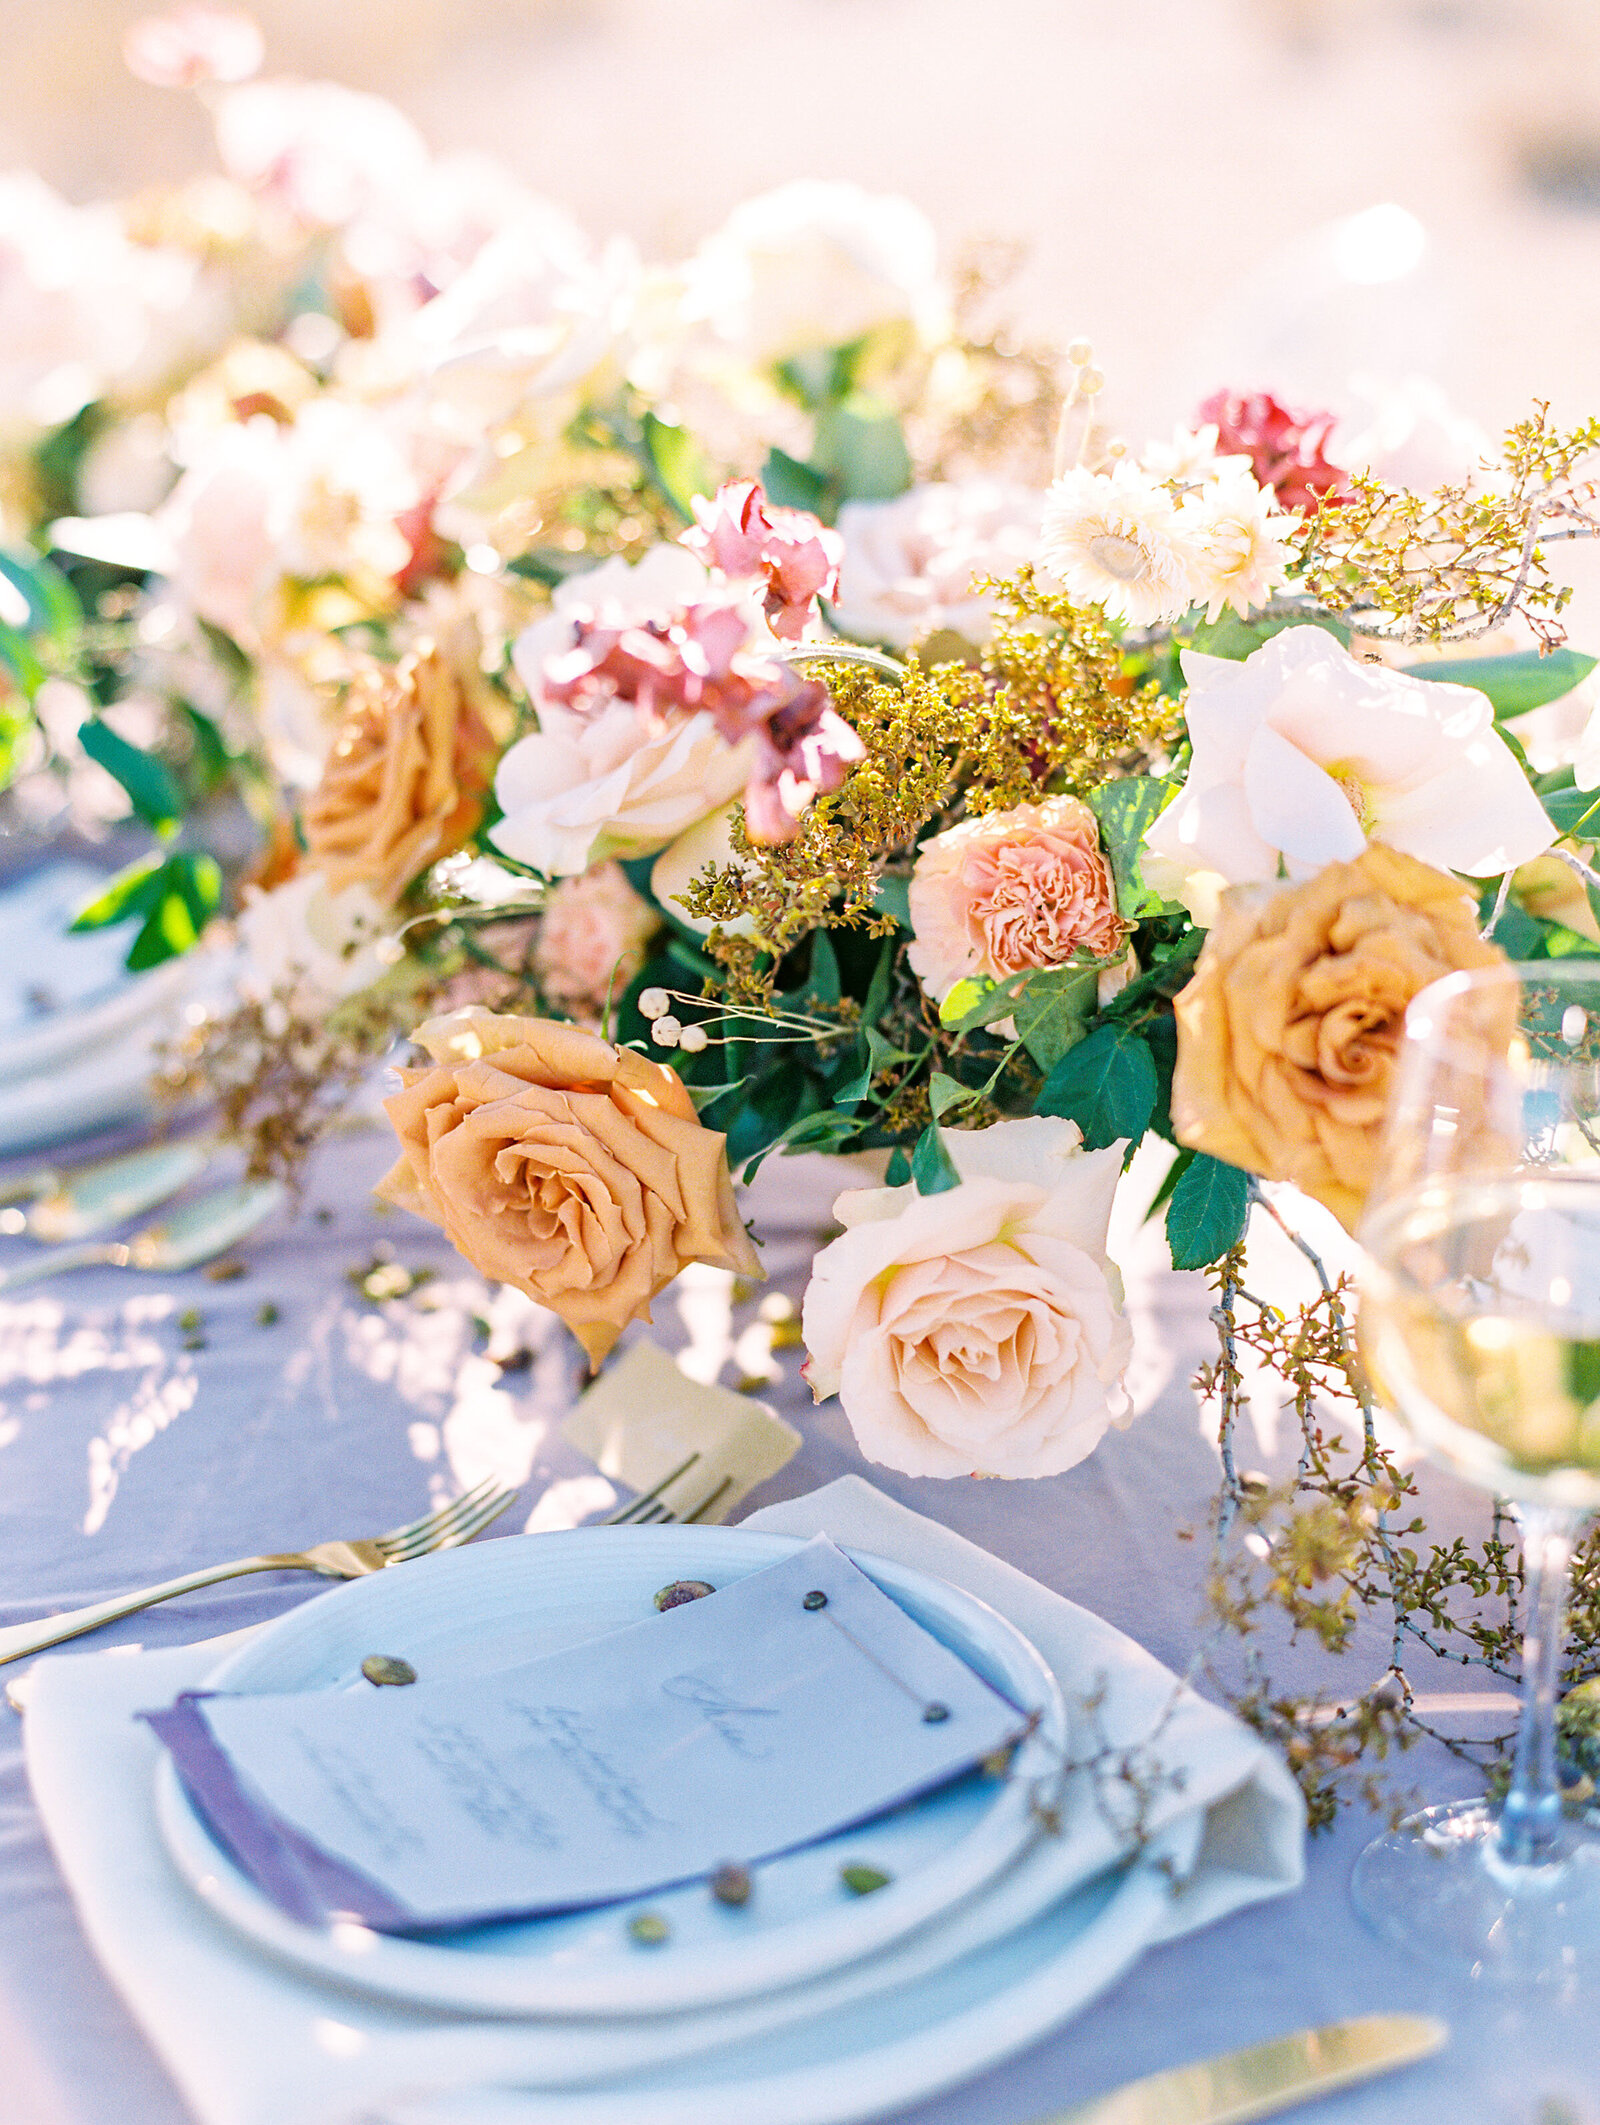 Honey-Rose-Wedding-Floral-Center-Piece-JannaBrown-Babsie